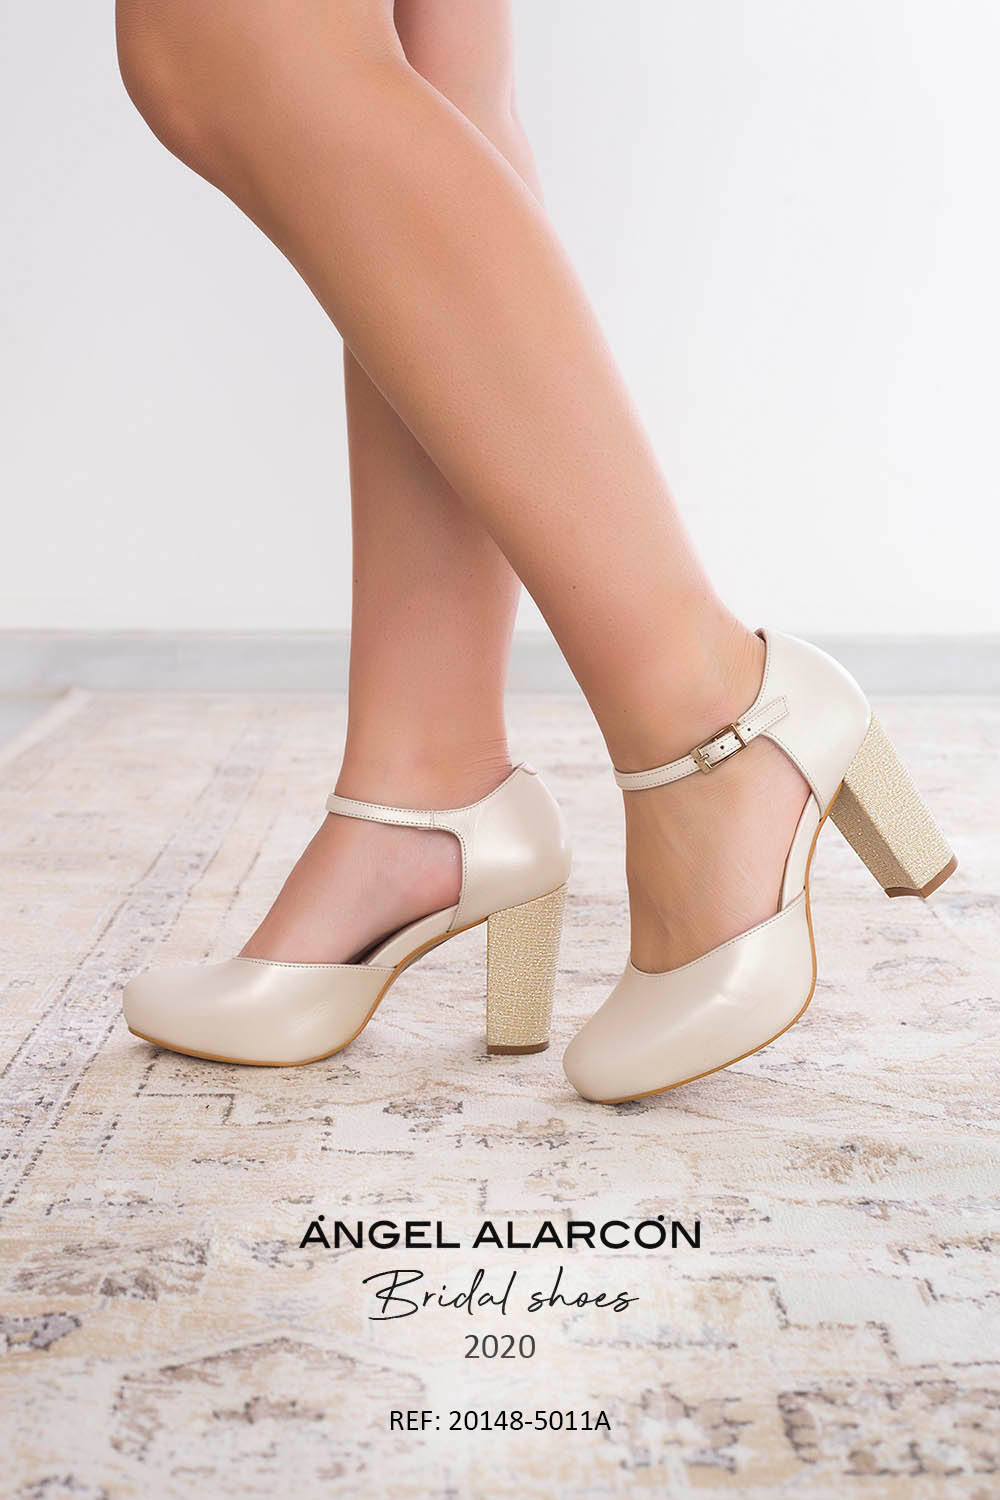 wedding shoes 2020 20148-5011A IVORY. Comfortable women's wedding shoes by Angel Alarcon